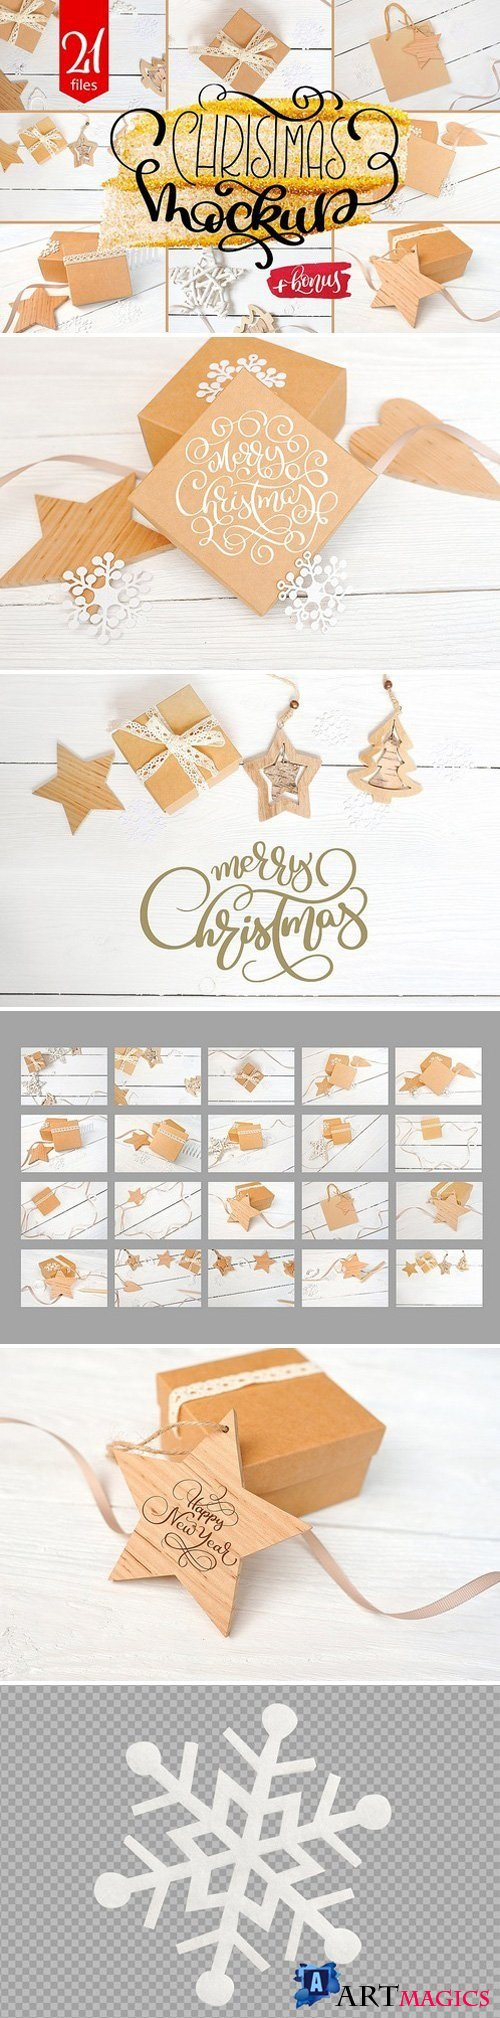 Christmas Mock Up Photos Collection 2120588